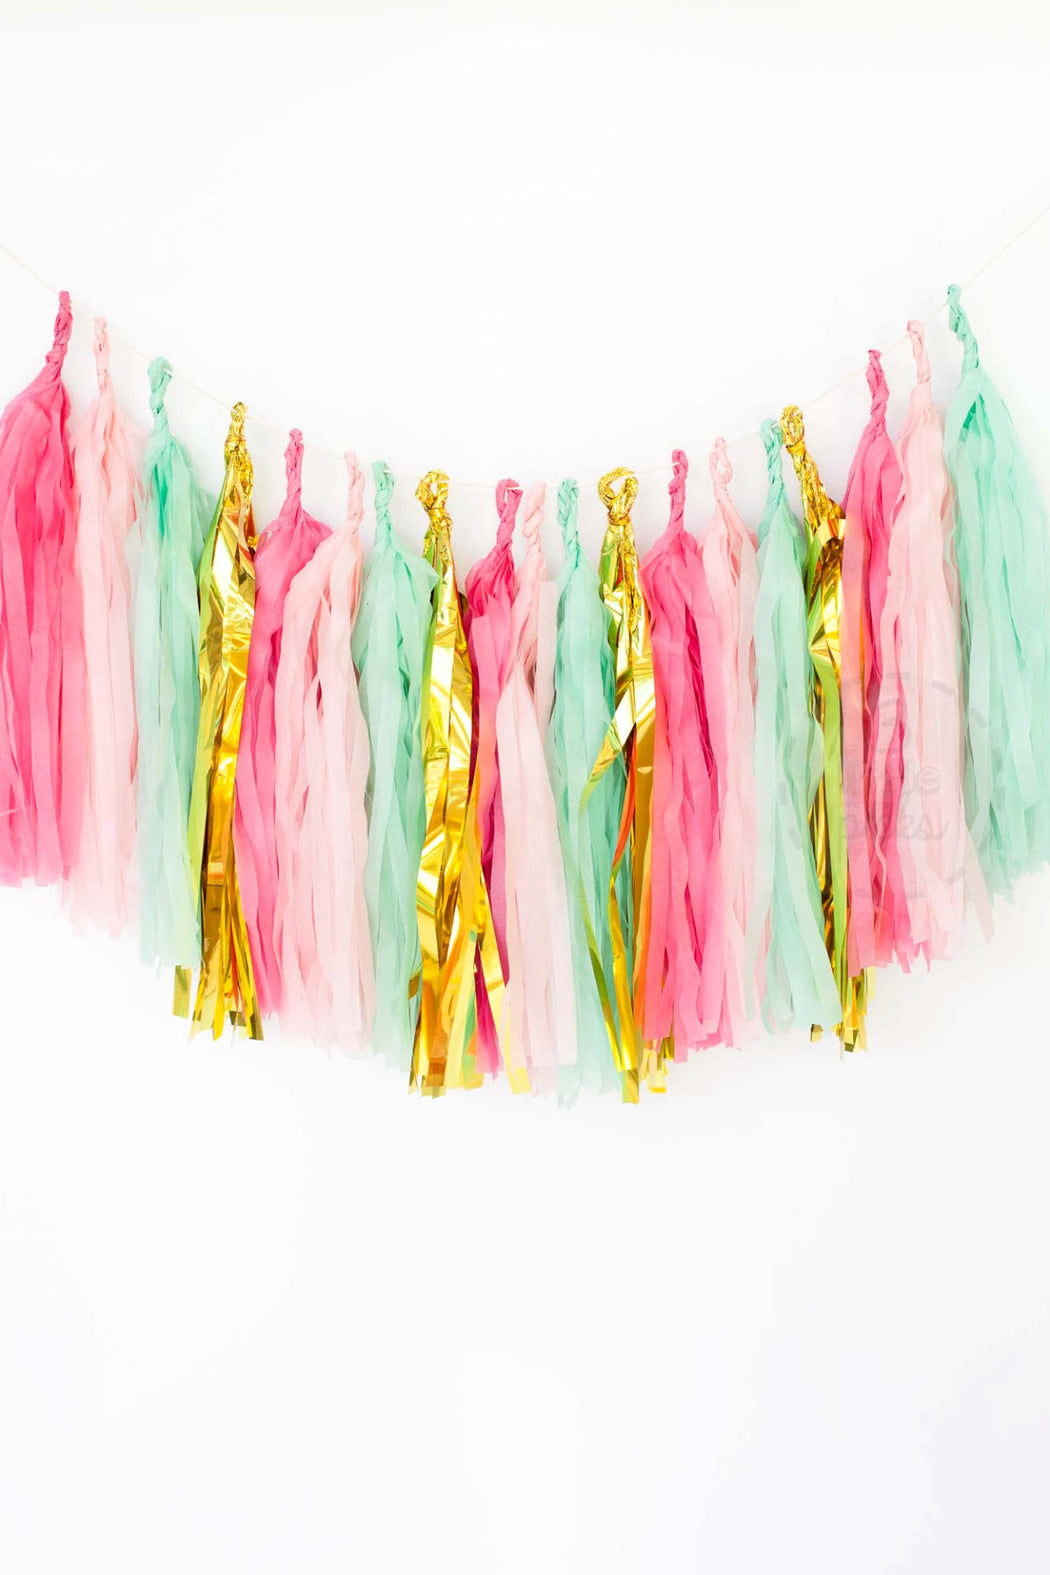 Mint And Pink Tassel Garland Kit, Partyware, 3littlepicks - 3LittlePicks